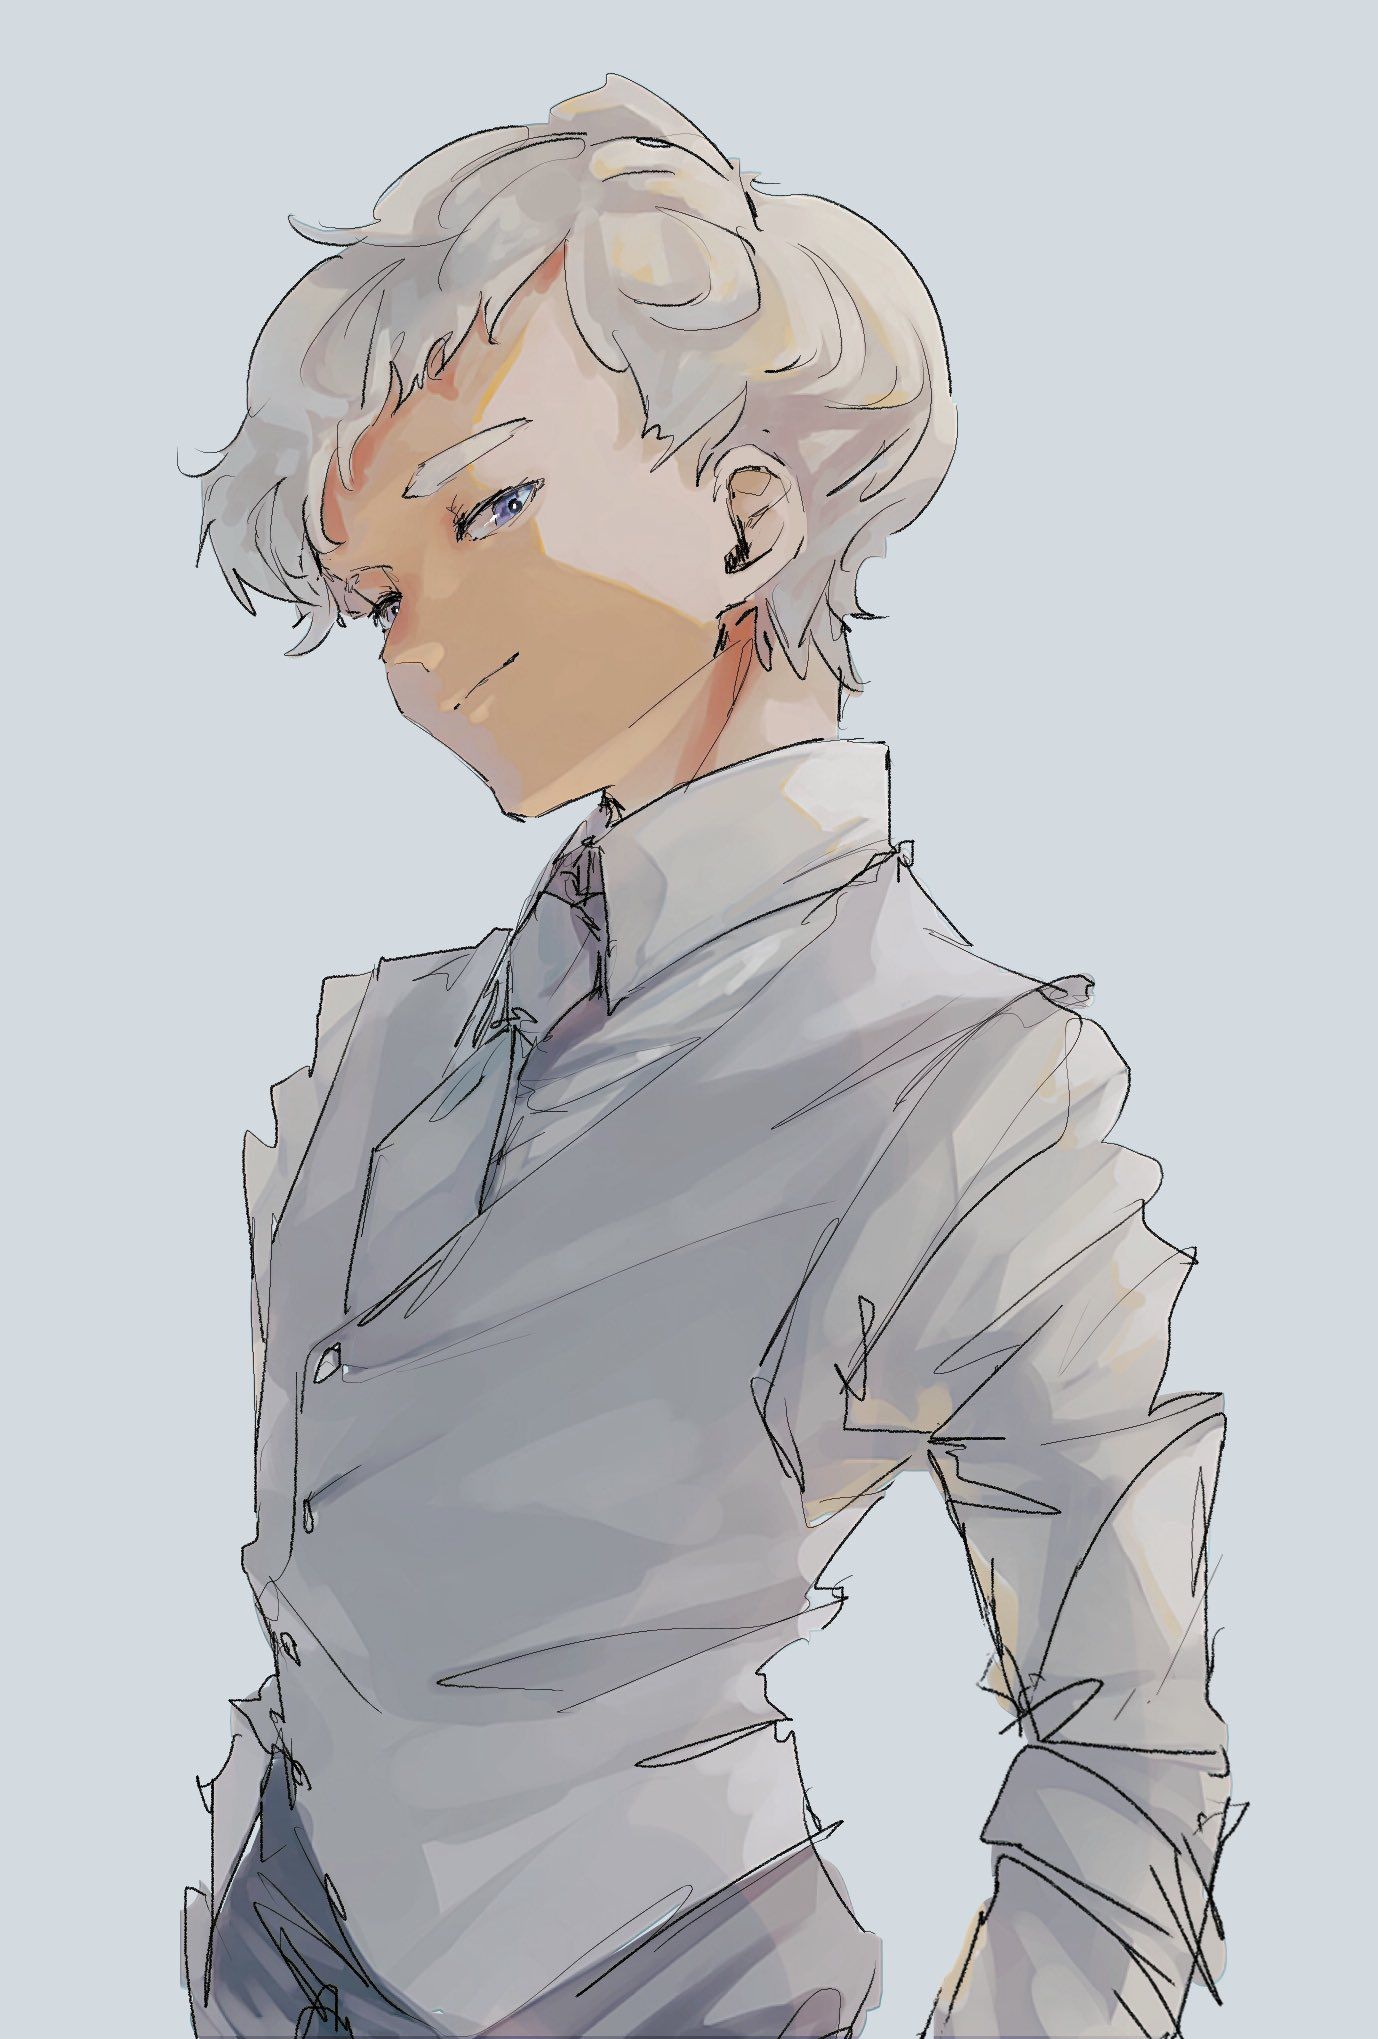 Is this Norman? Neverland art, Anime, Anime characters